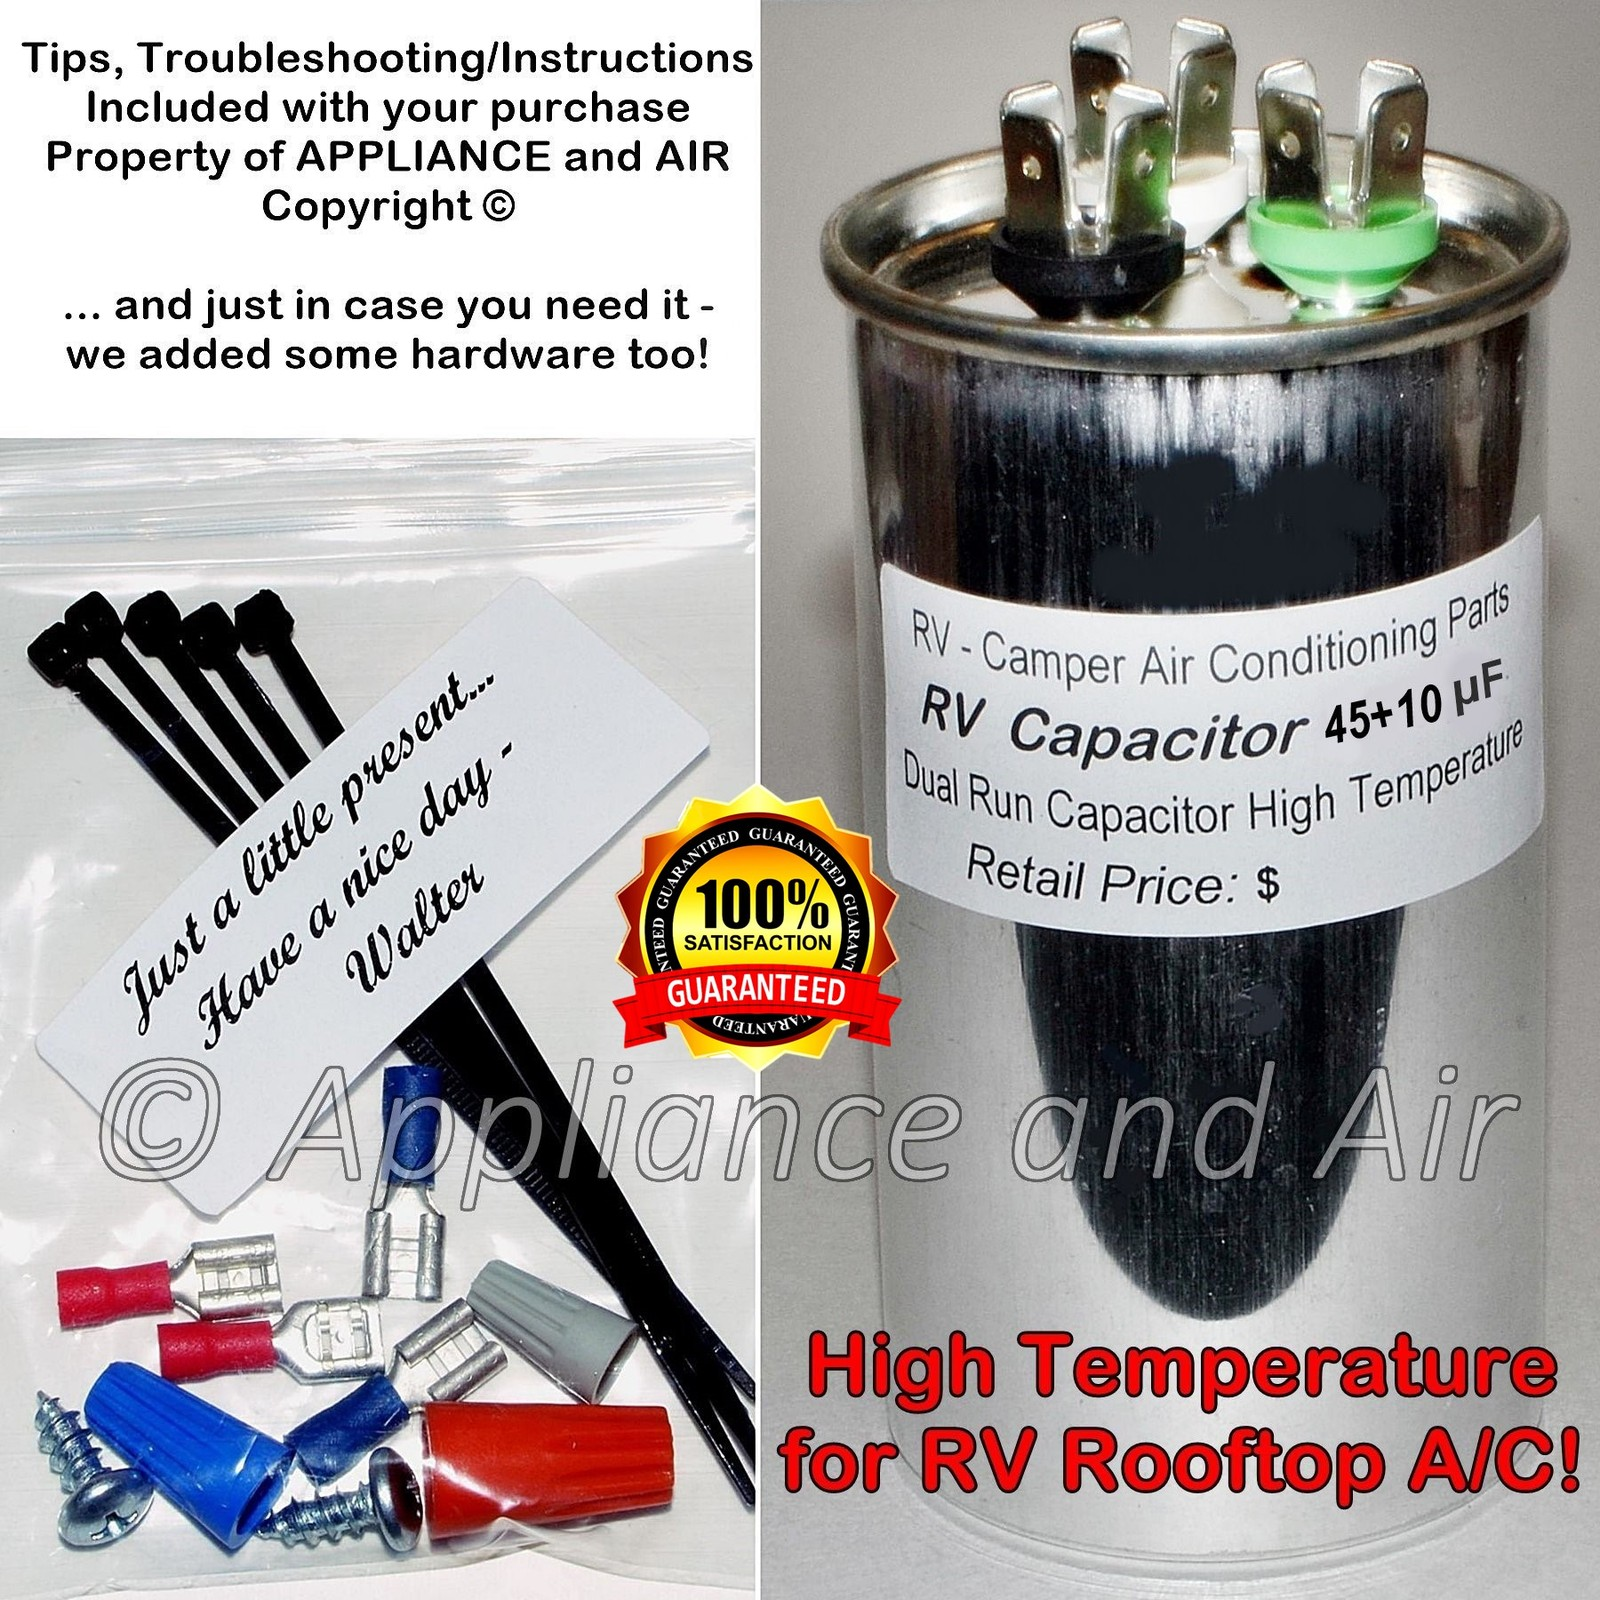 45 10 mfd rv capacitor and hardware.jpg